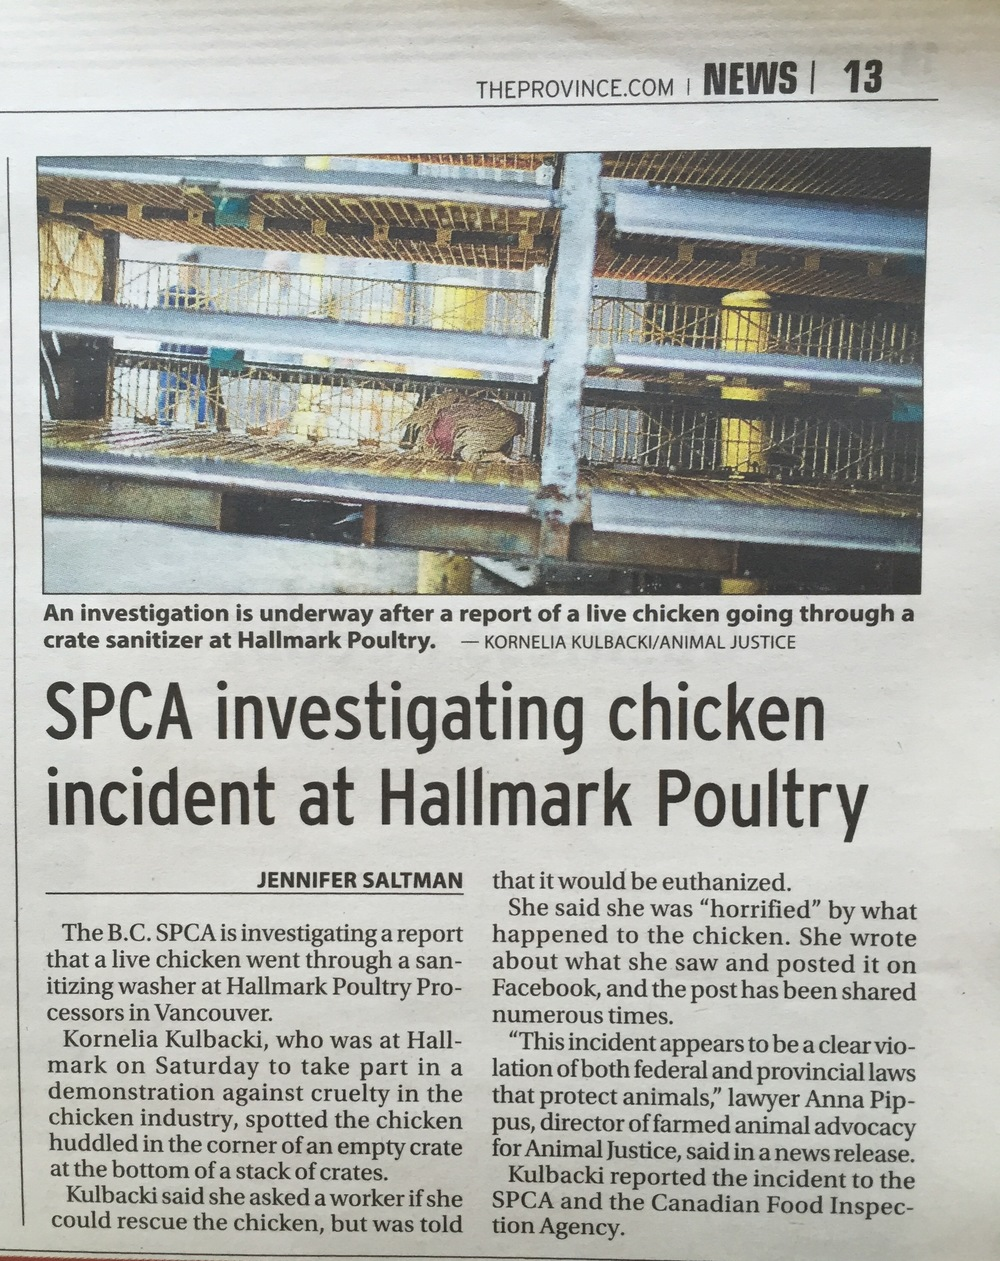 Reporting Animal Cruelty Works, Especially When Combined With Media